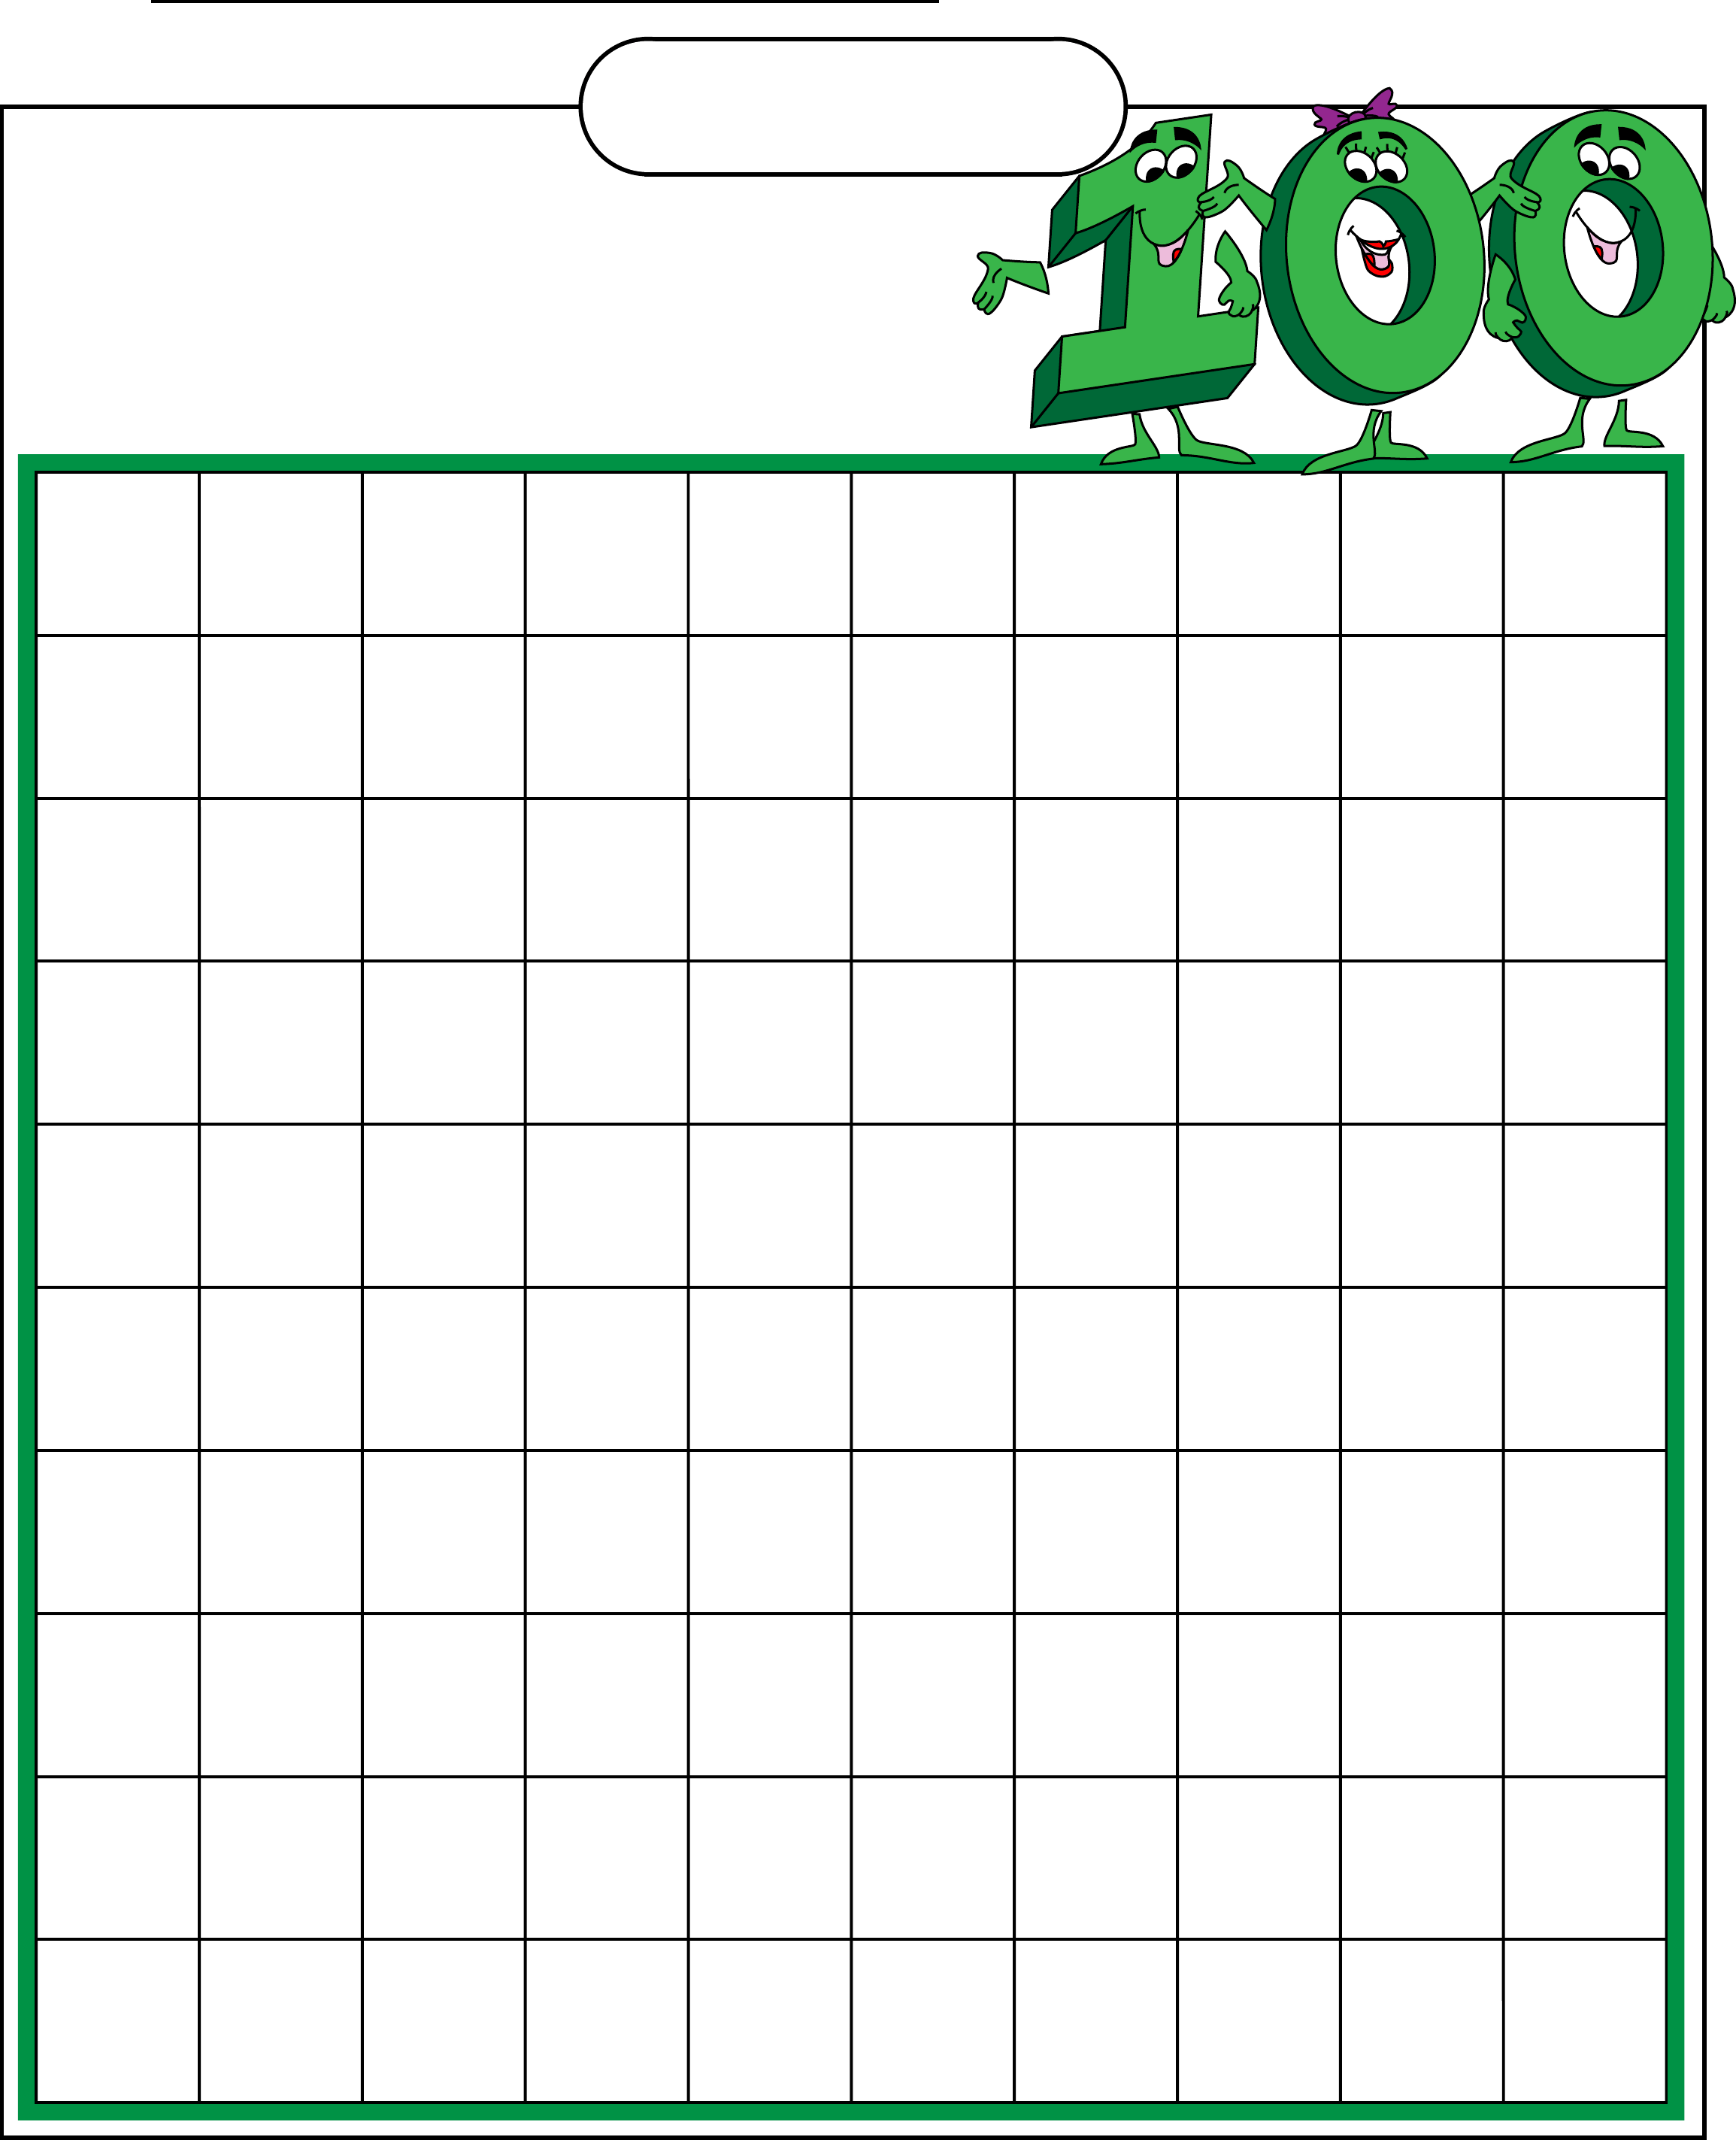 ... 781 free samples examples format blank hundred filling chart ideas